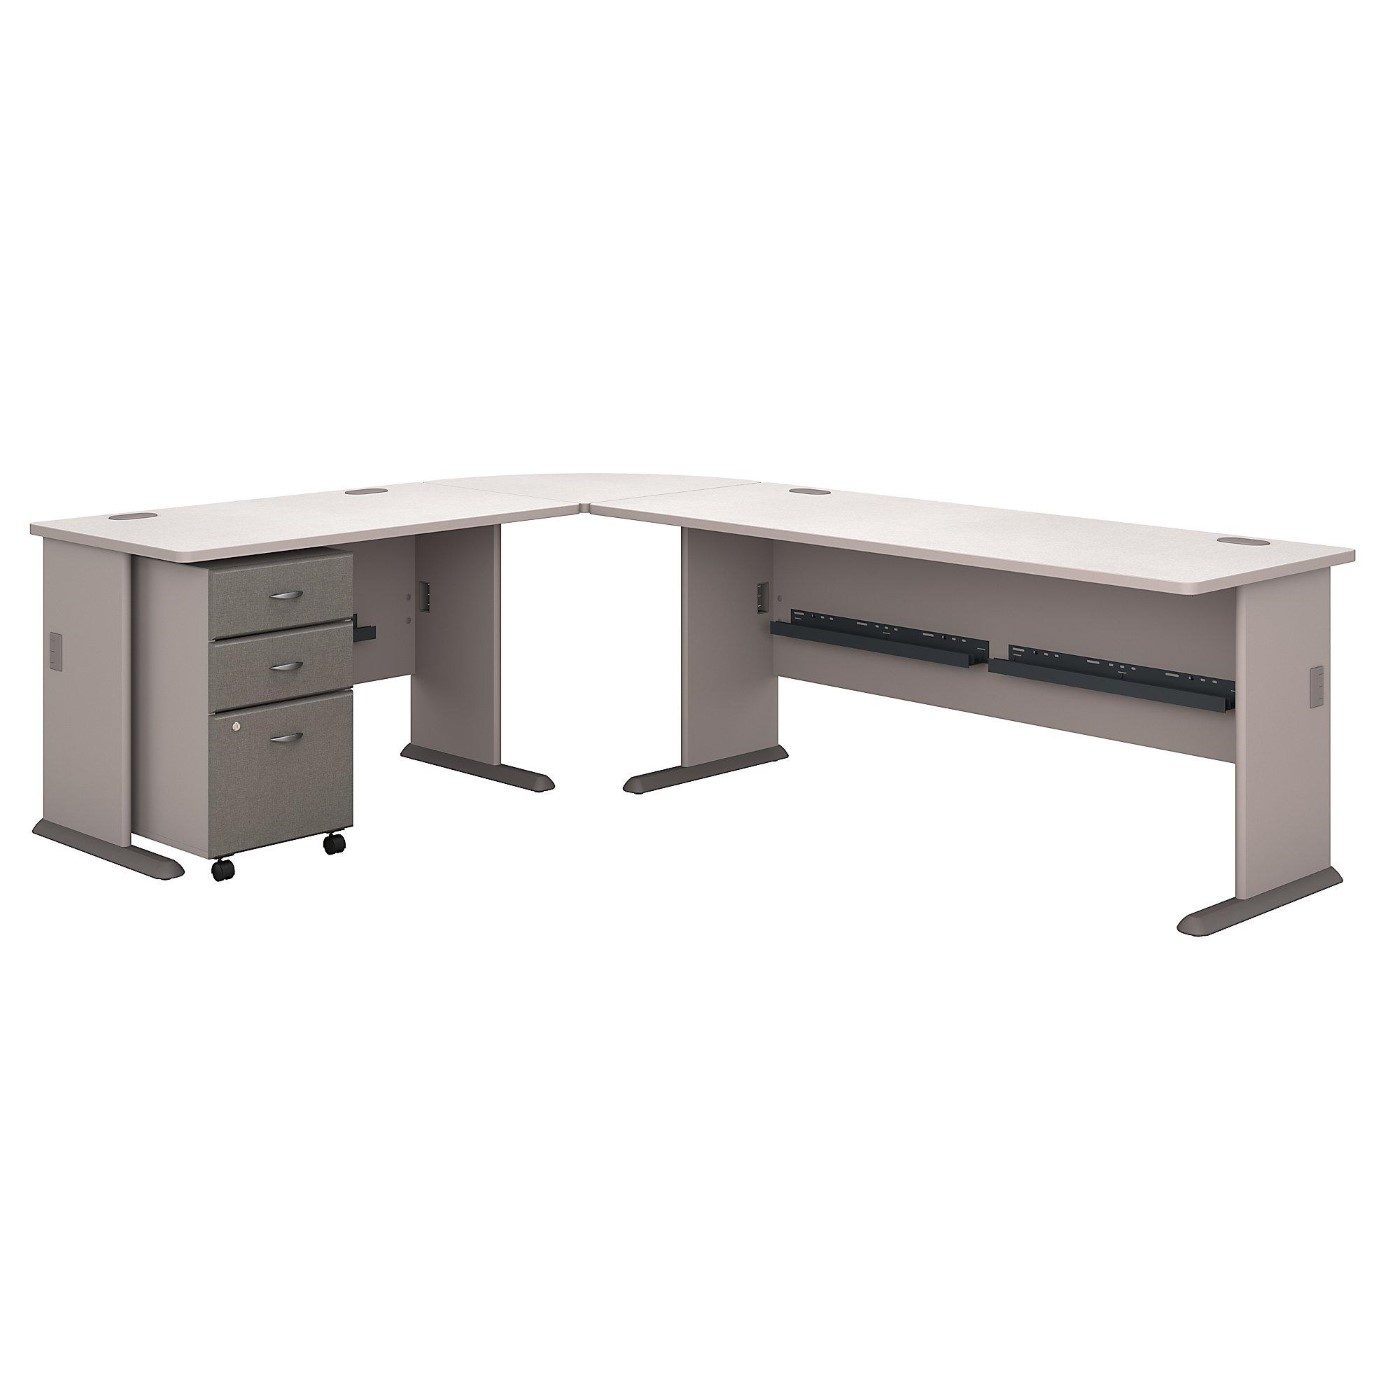 <font color=#c60><b>BUSH BUSINESS FURNITURE SERIES A 99W X 75D L SHAPED DESK WITH MOBILE FILE CABINET. FREE SHIPPING</font></b></font></b>